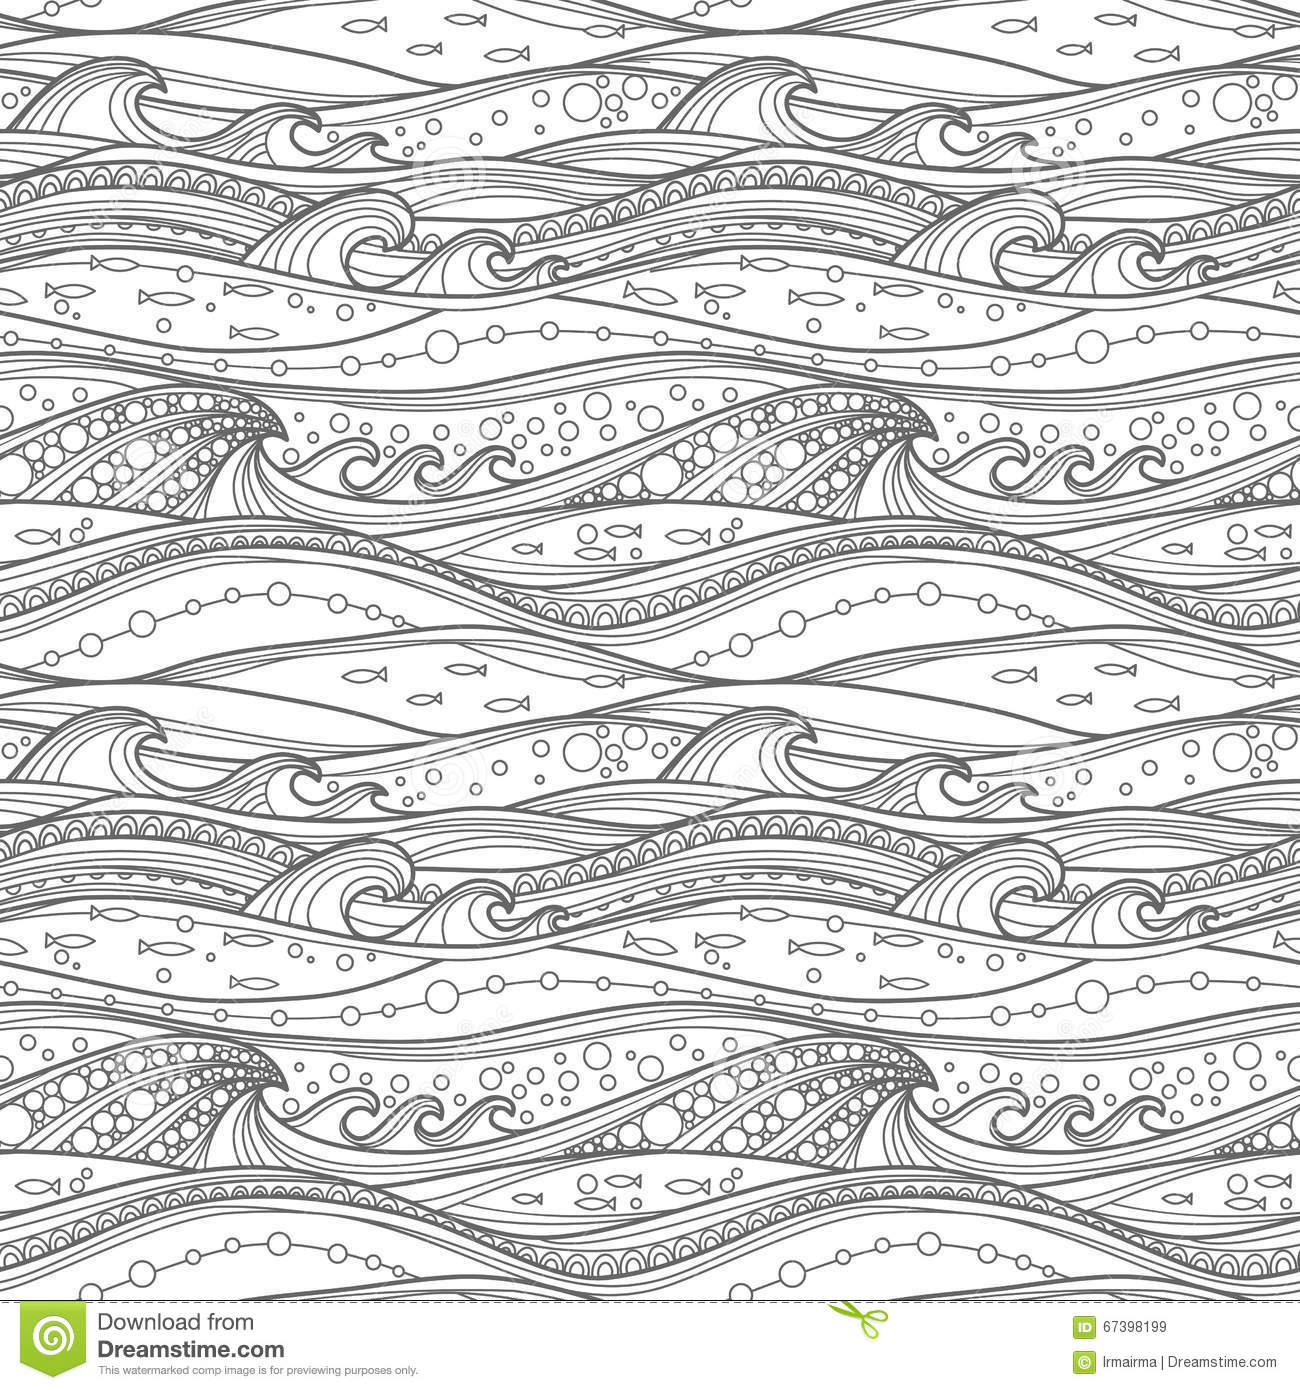 free ocean waves coloring pages - photo#18